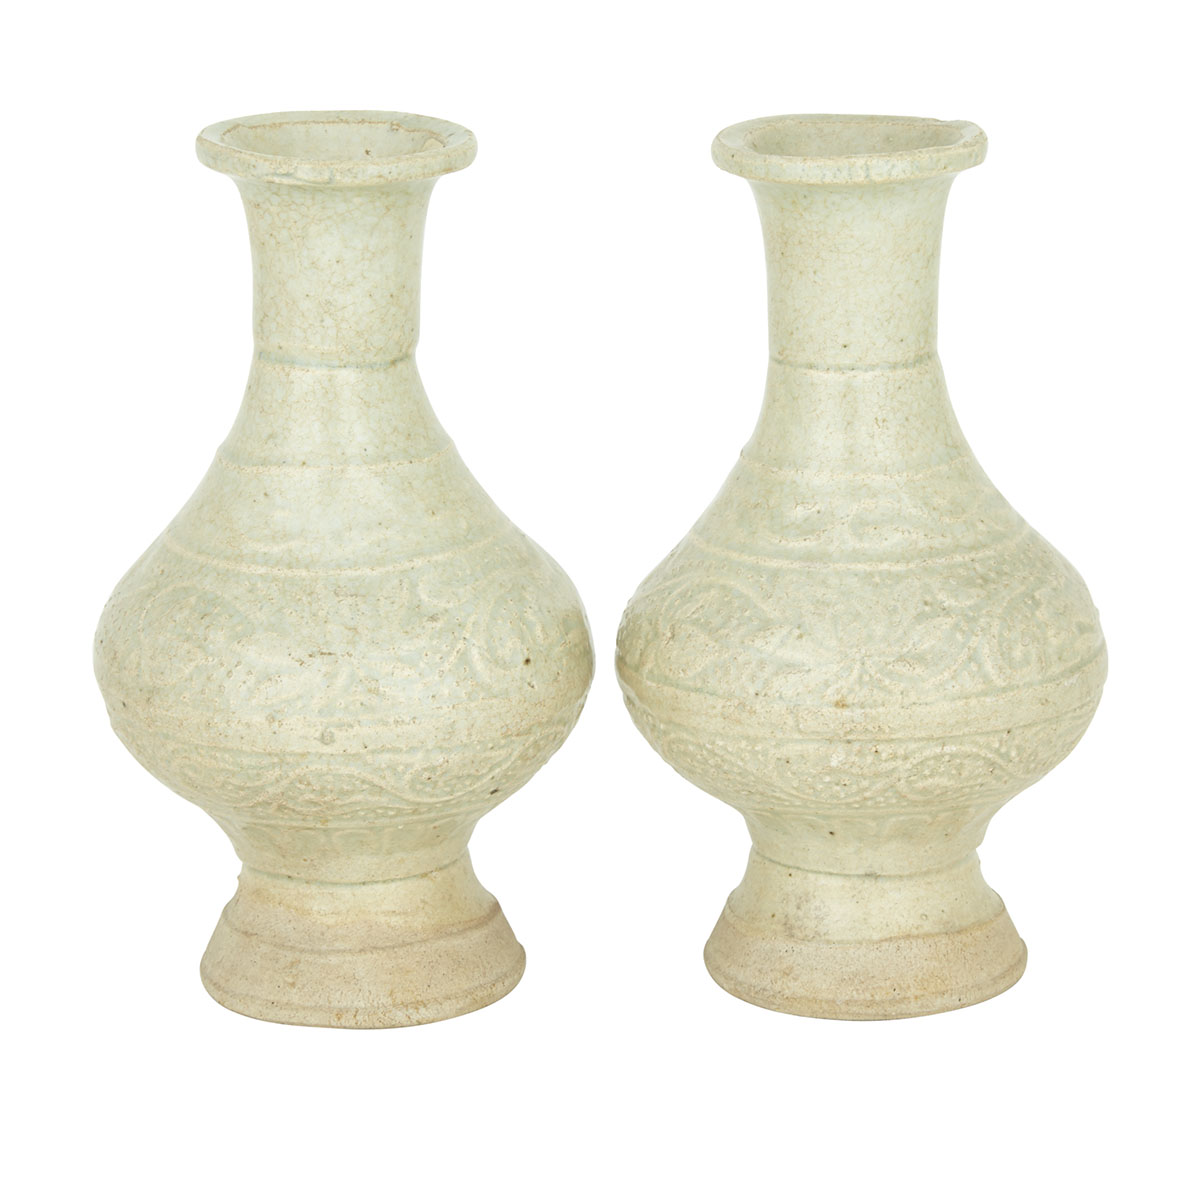 Pair of Yingqing Vases, Song Dynasty (960-1279)